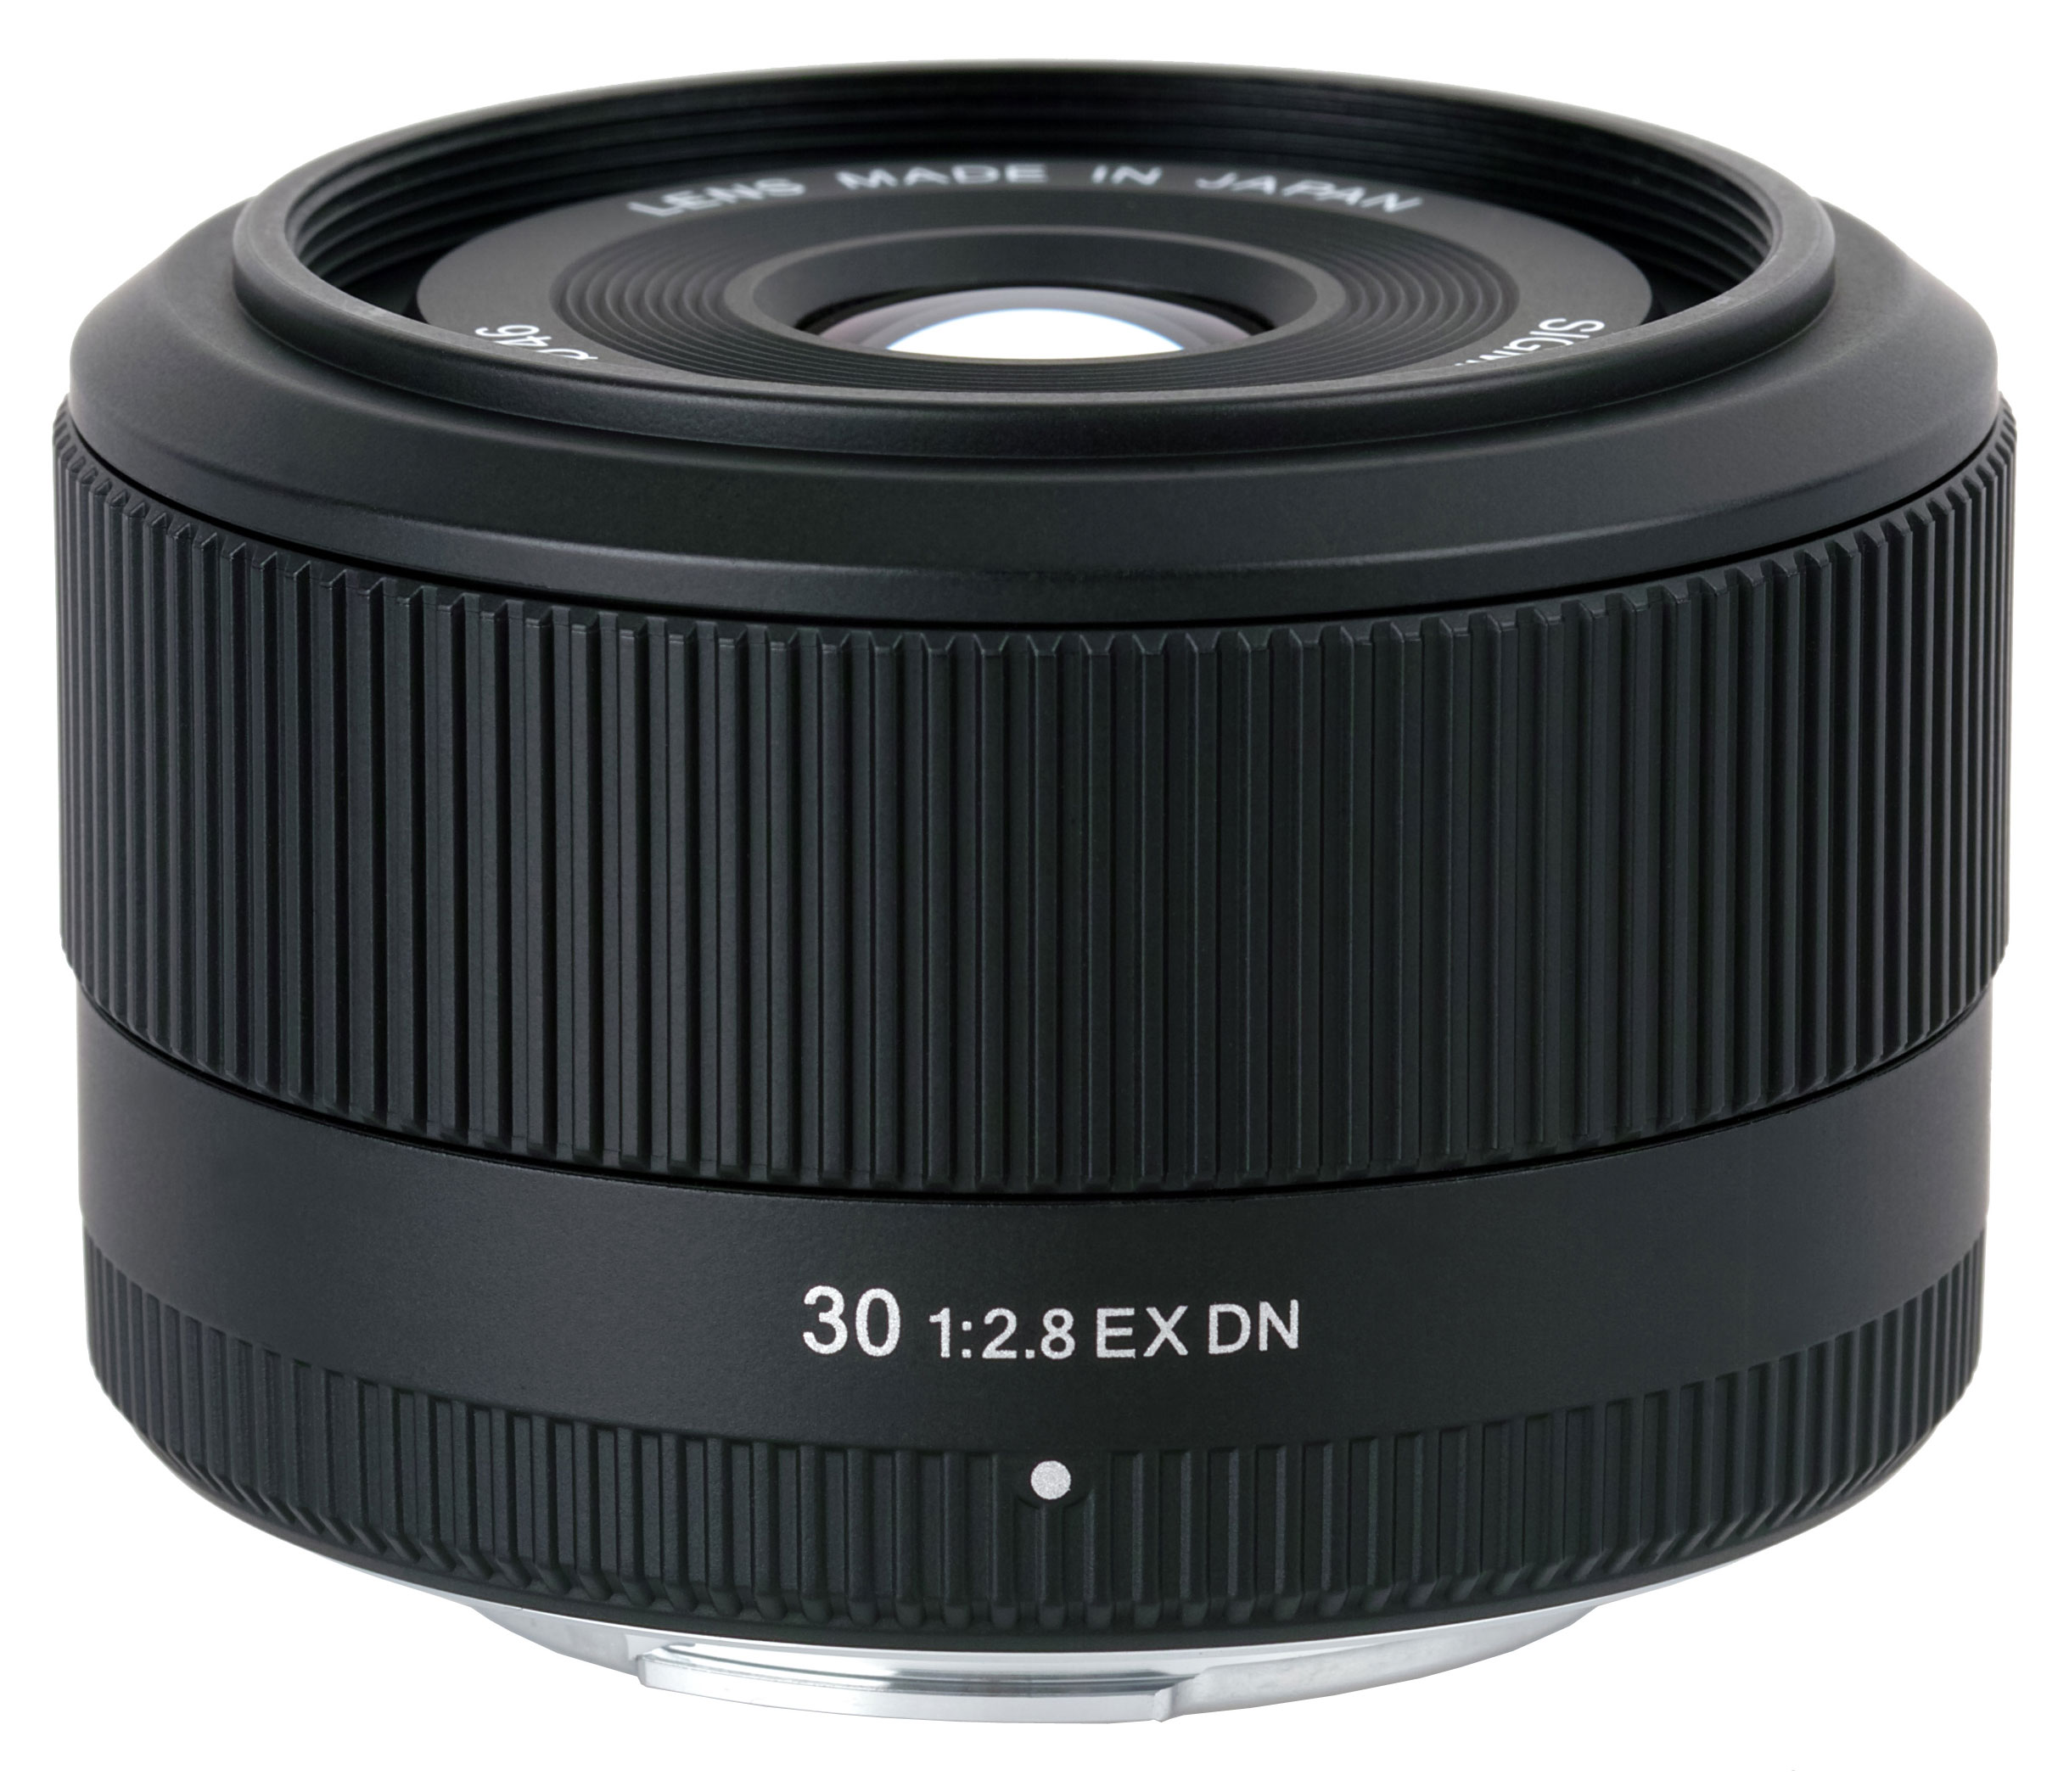 Sigma 30mm F2.8 lens for Sony NEX Compact System Cameras